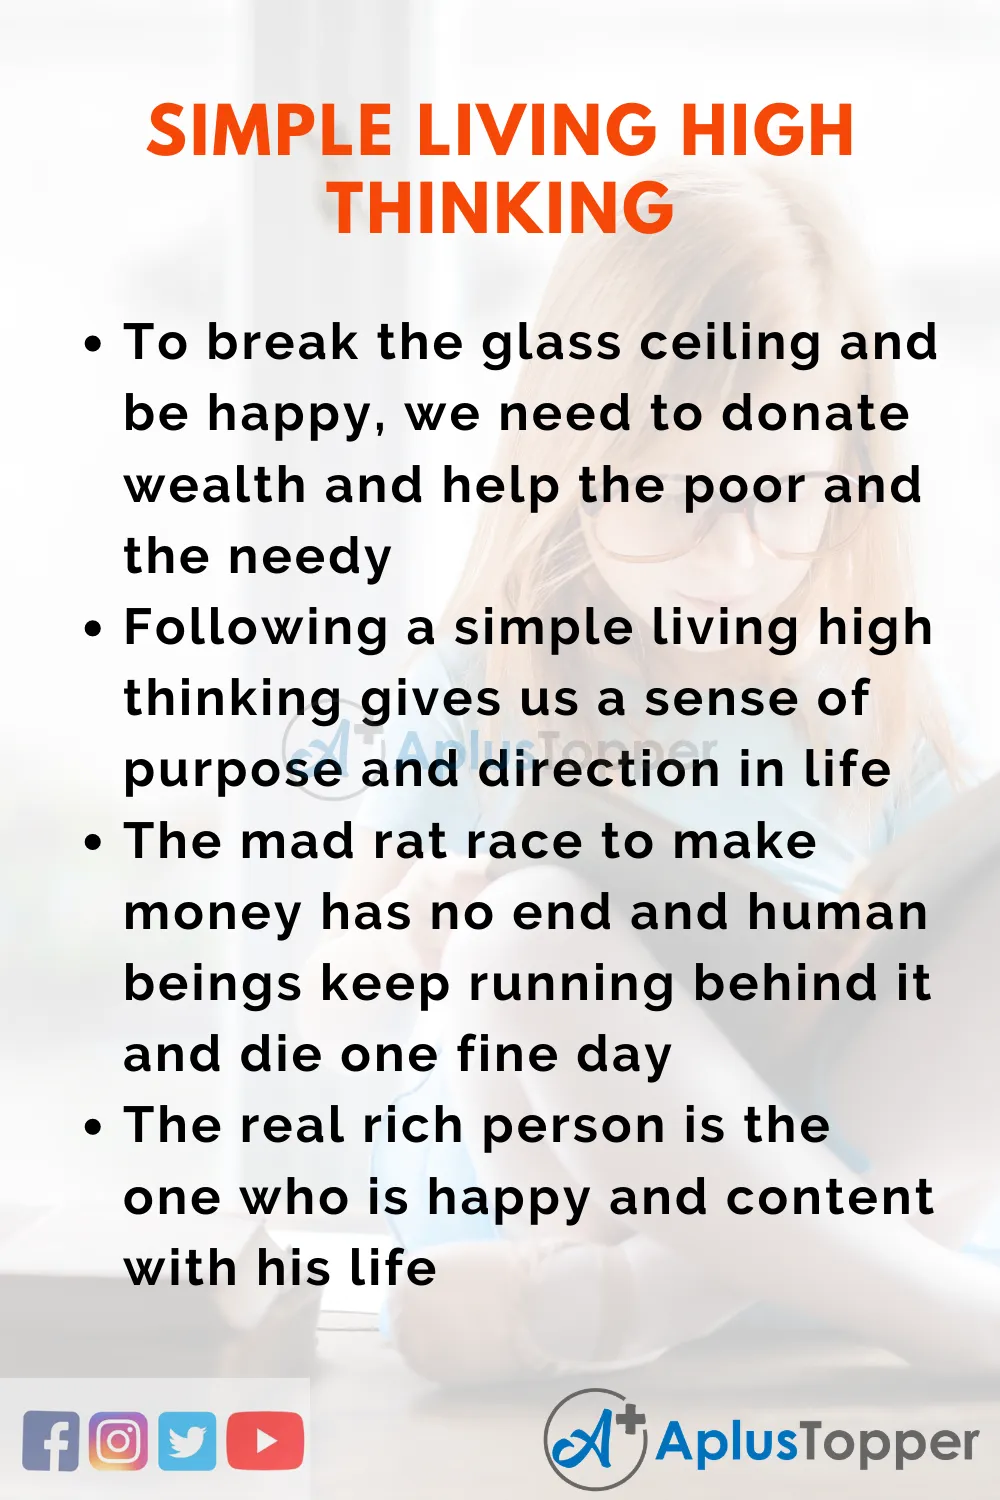 Essay On Simple Living High Thinking Essayonsimplelivinghighthinking Simplelivinghighthinkingessay Aplustopper Help The Poor About People